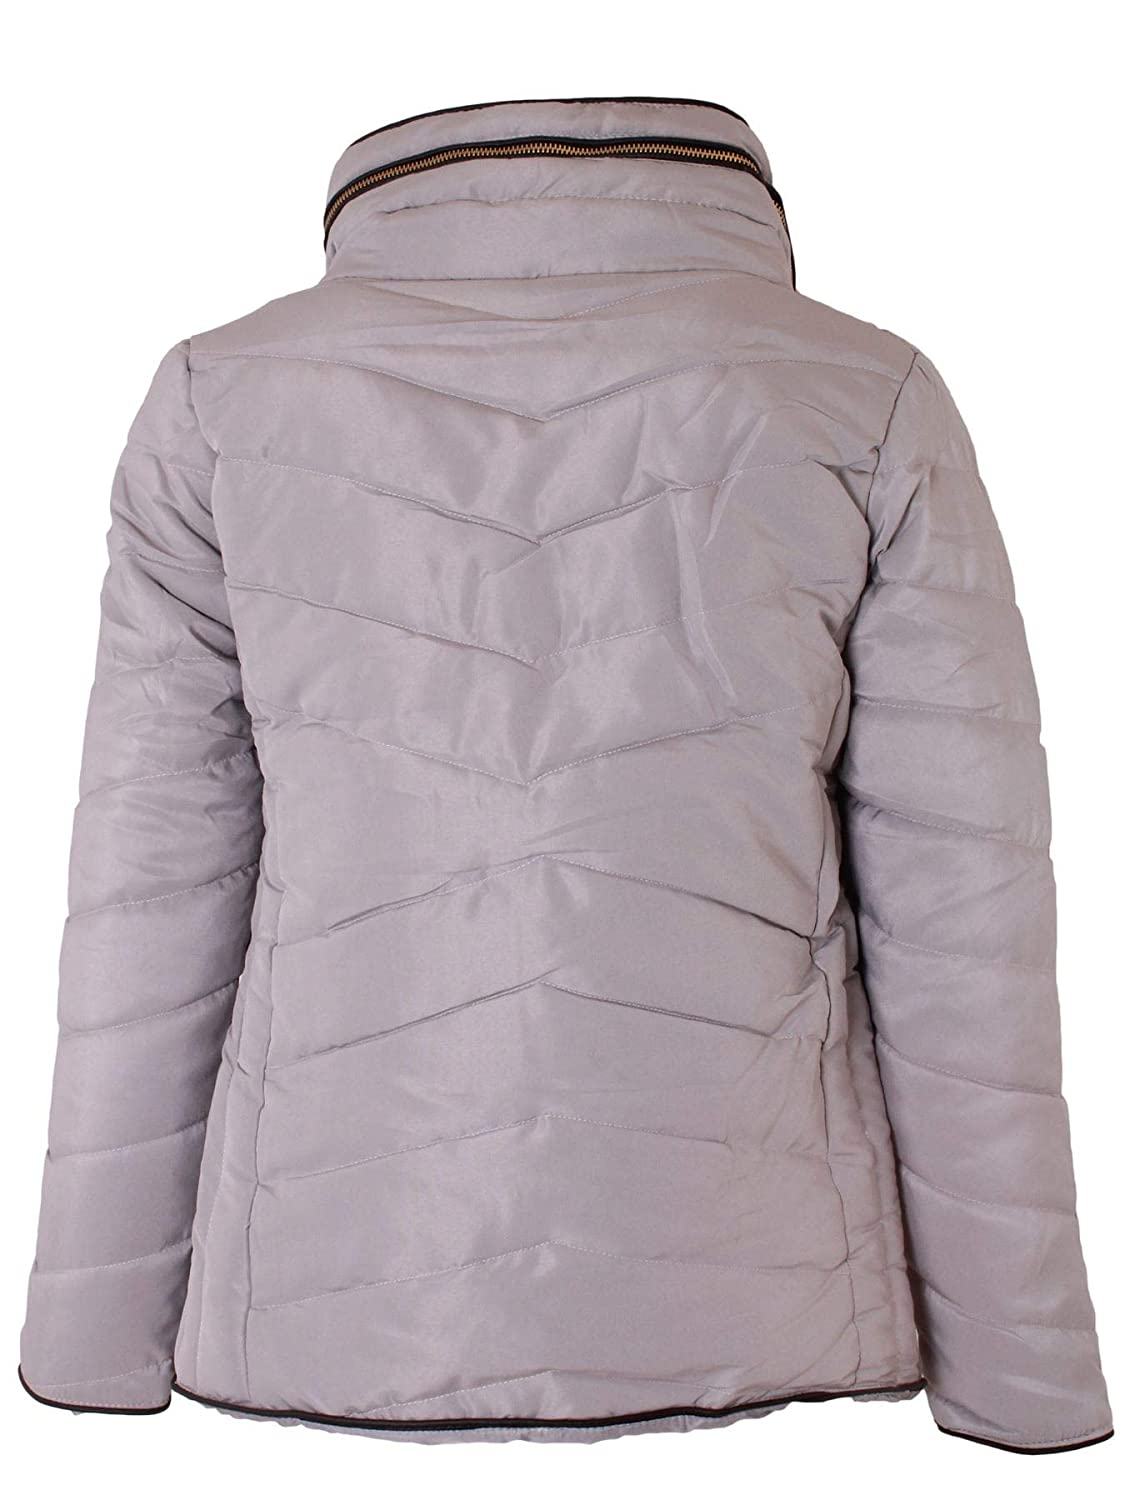 Ladies Quilted Hood Outwear Long Sleeve Curved Hem Winter Knitted Zip Up Warm Coat for Holidays and Traveling Love My Fashions/® Womens Jacket Parka Padded Puffer Bubble with Faux Fur Fitted Collar